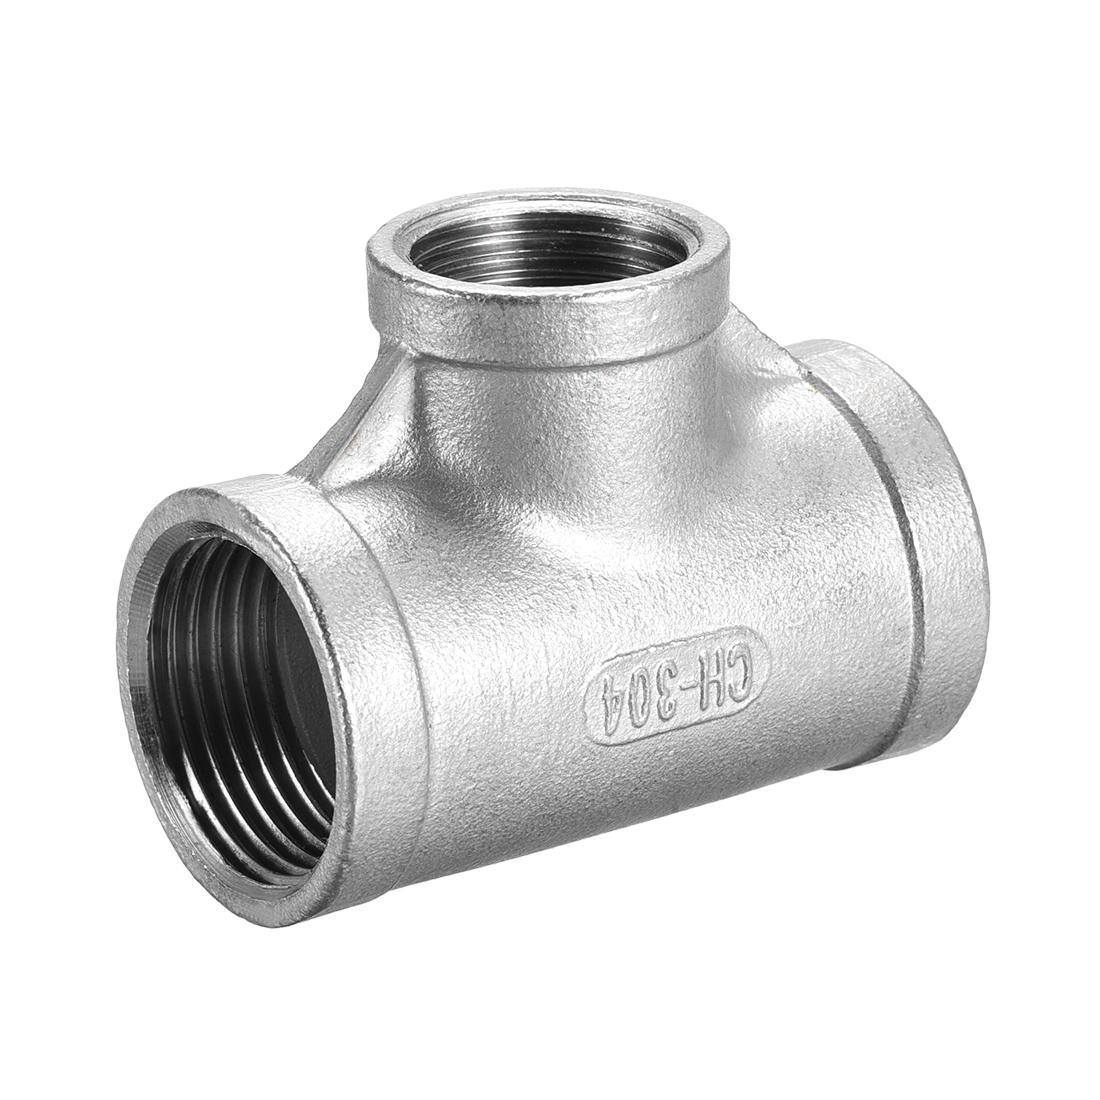 Stainless Steel 304 Cast Pipe Fitting 1 BSPT x 3/4 BSPT Tee Shaped Connector